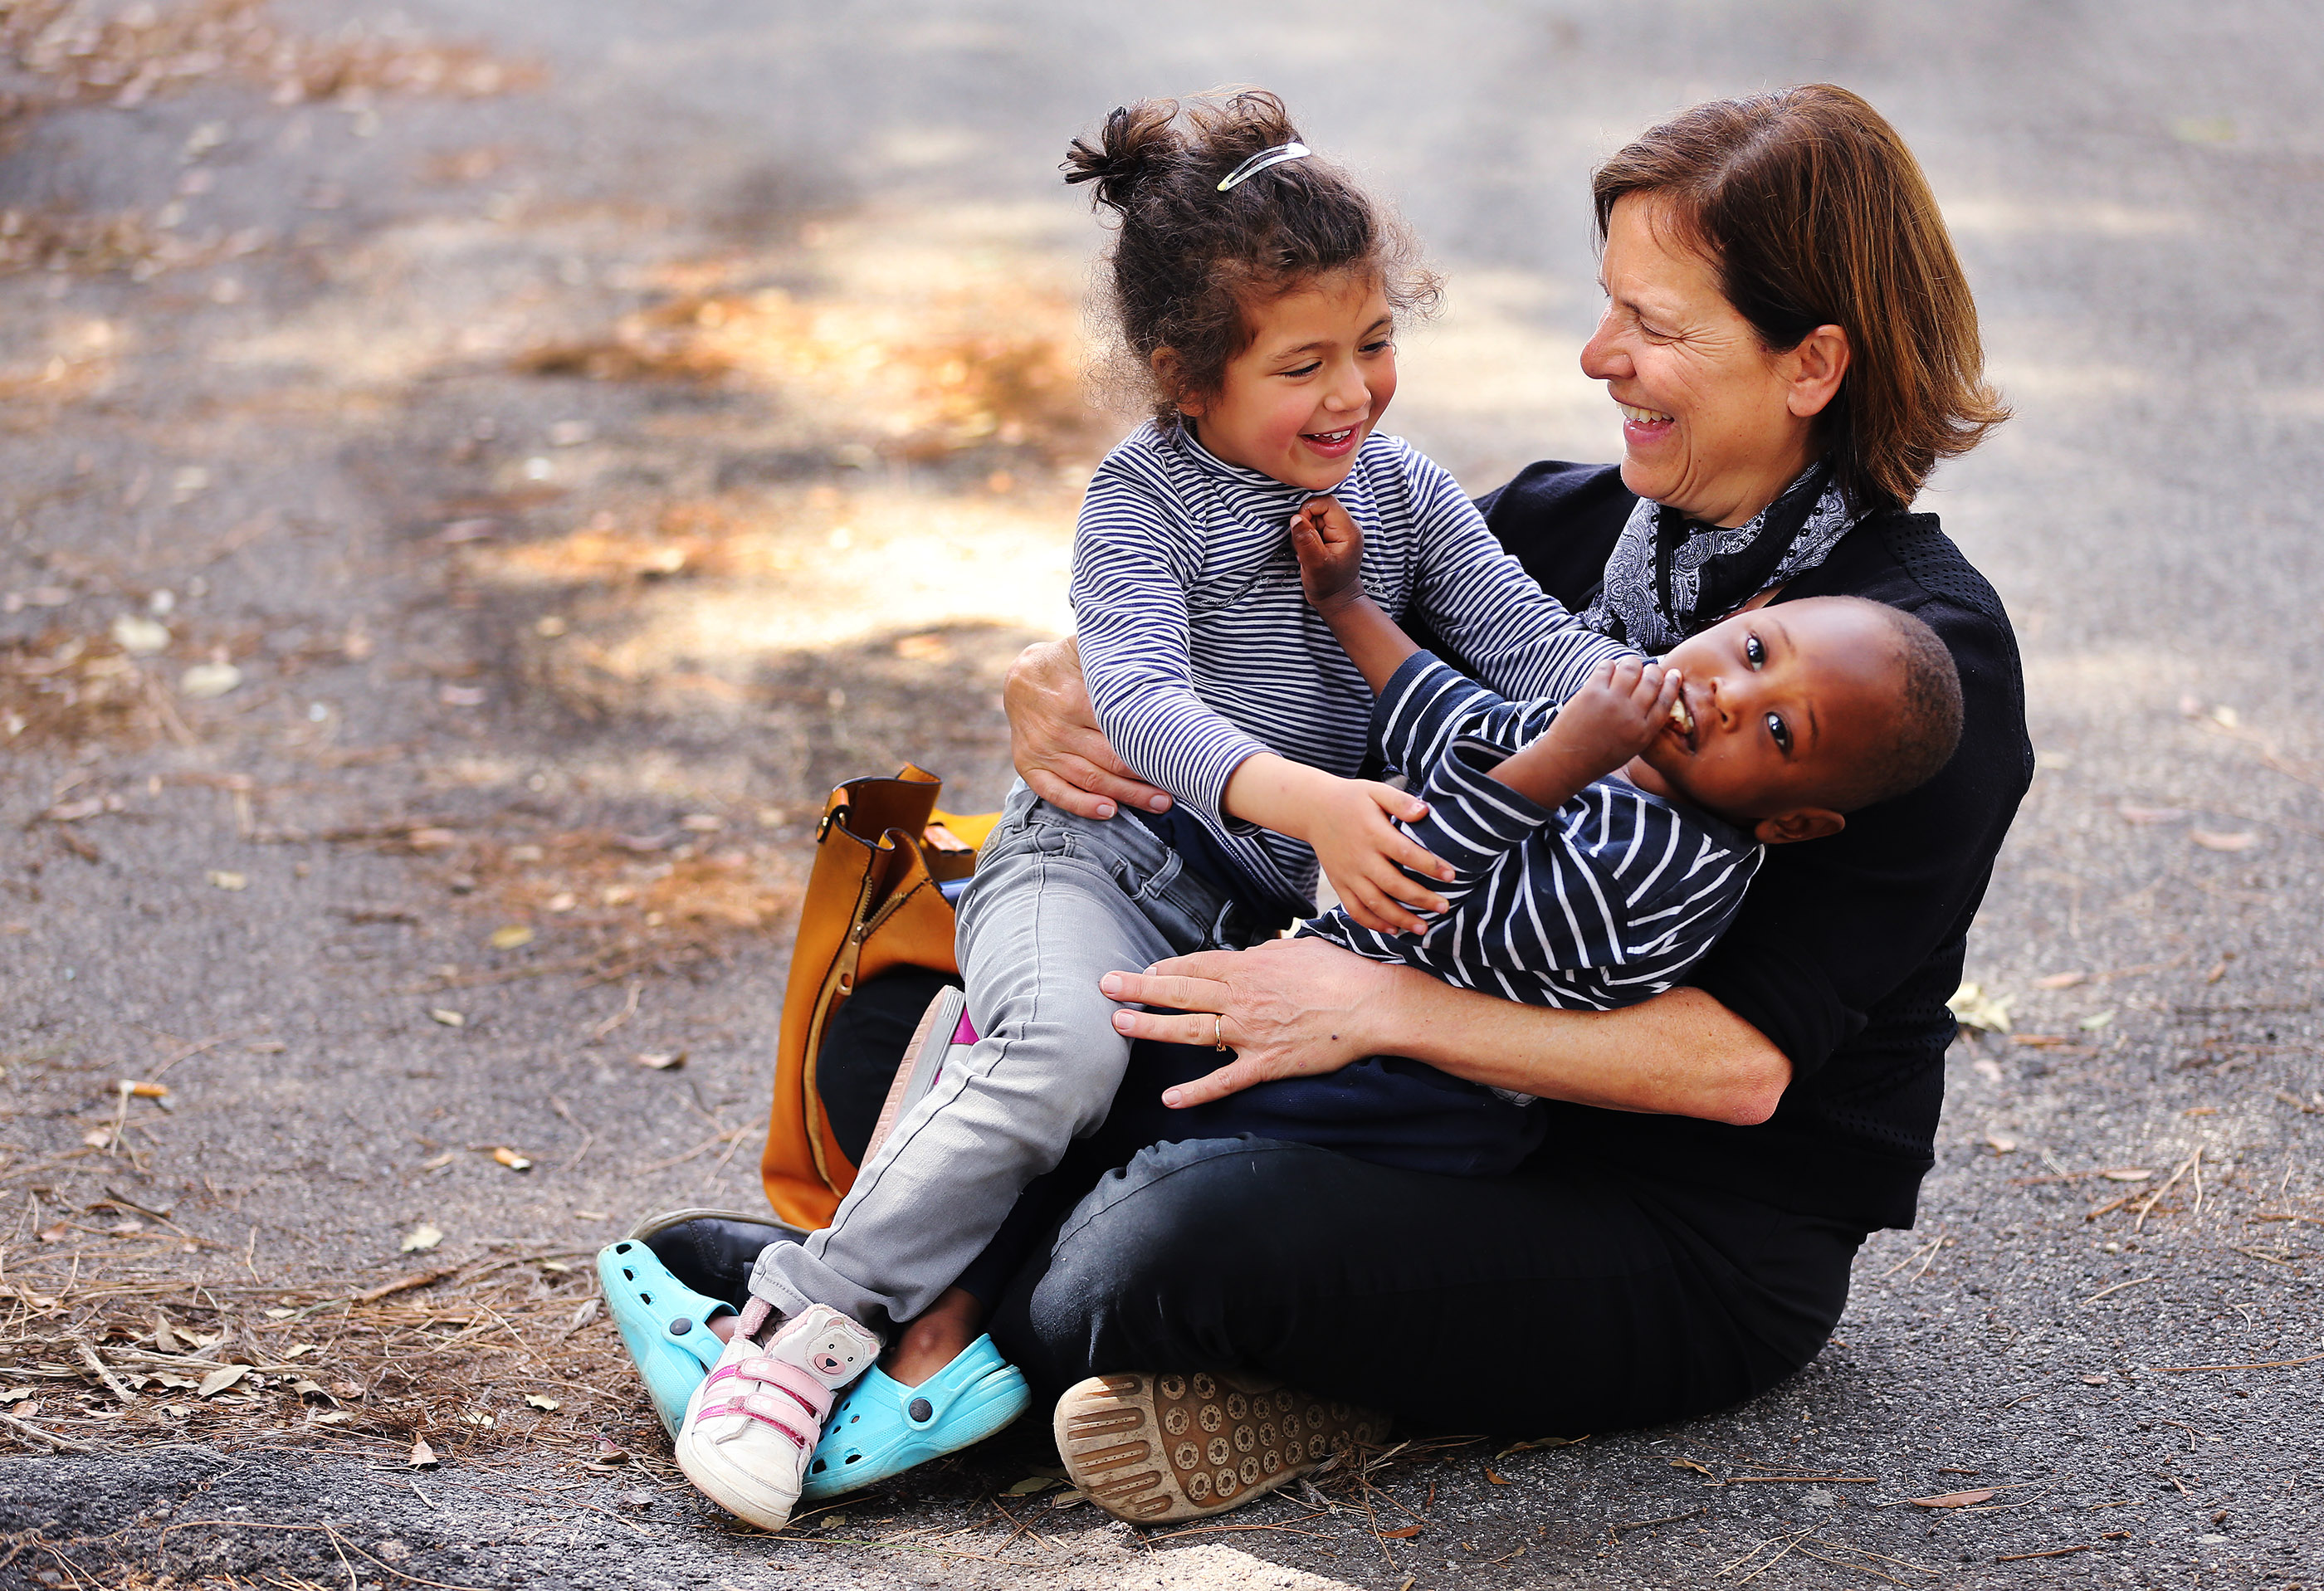 Latter-day Saint Charities missionary Anita Herway plays with Malek and Momo Mana at INTERSOS in Rome, Italy, on Tuesday, April 17, 2018. Latter-day Saint Charities contributed money to the organization.